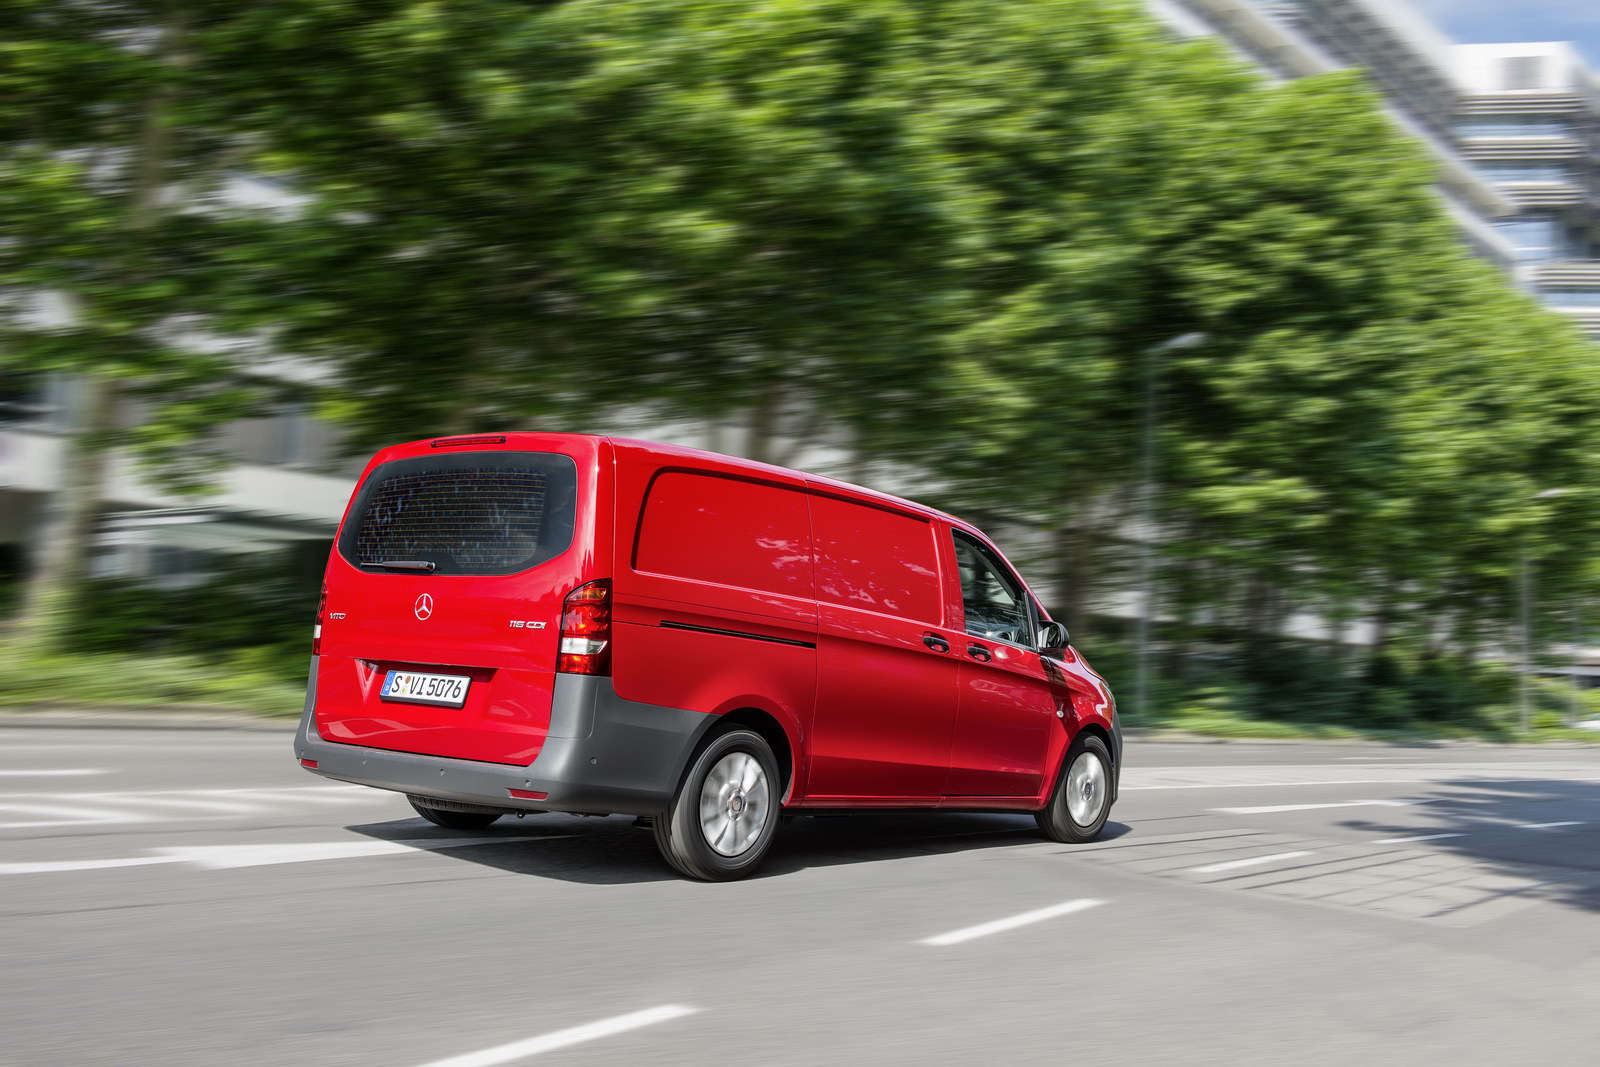 mercedes vito van looking to break out of sprinter shadow funtodrive net. Black Bedroom Furniture Sets. Home Design Ideas